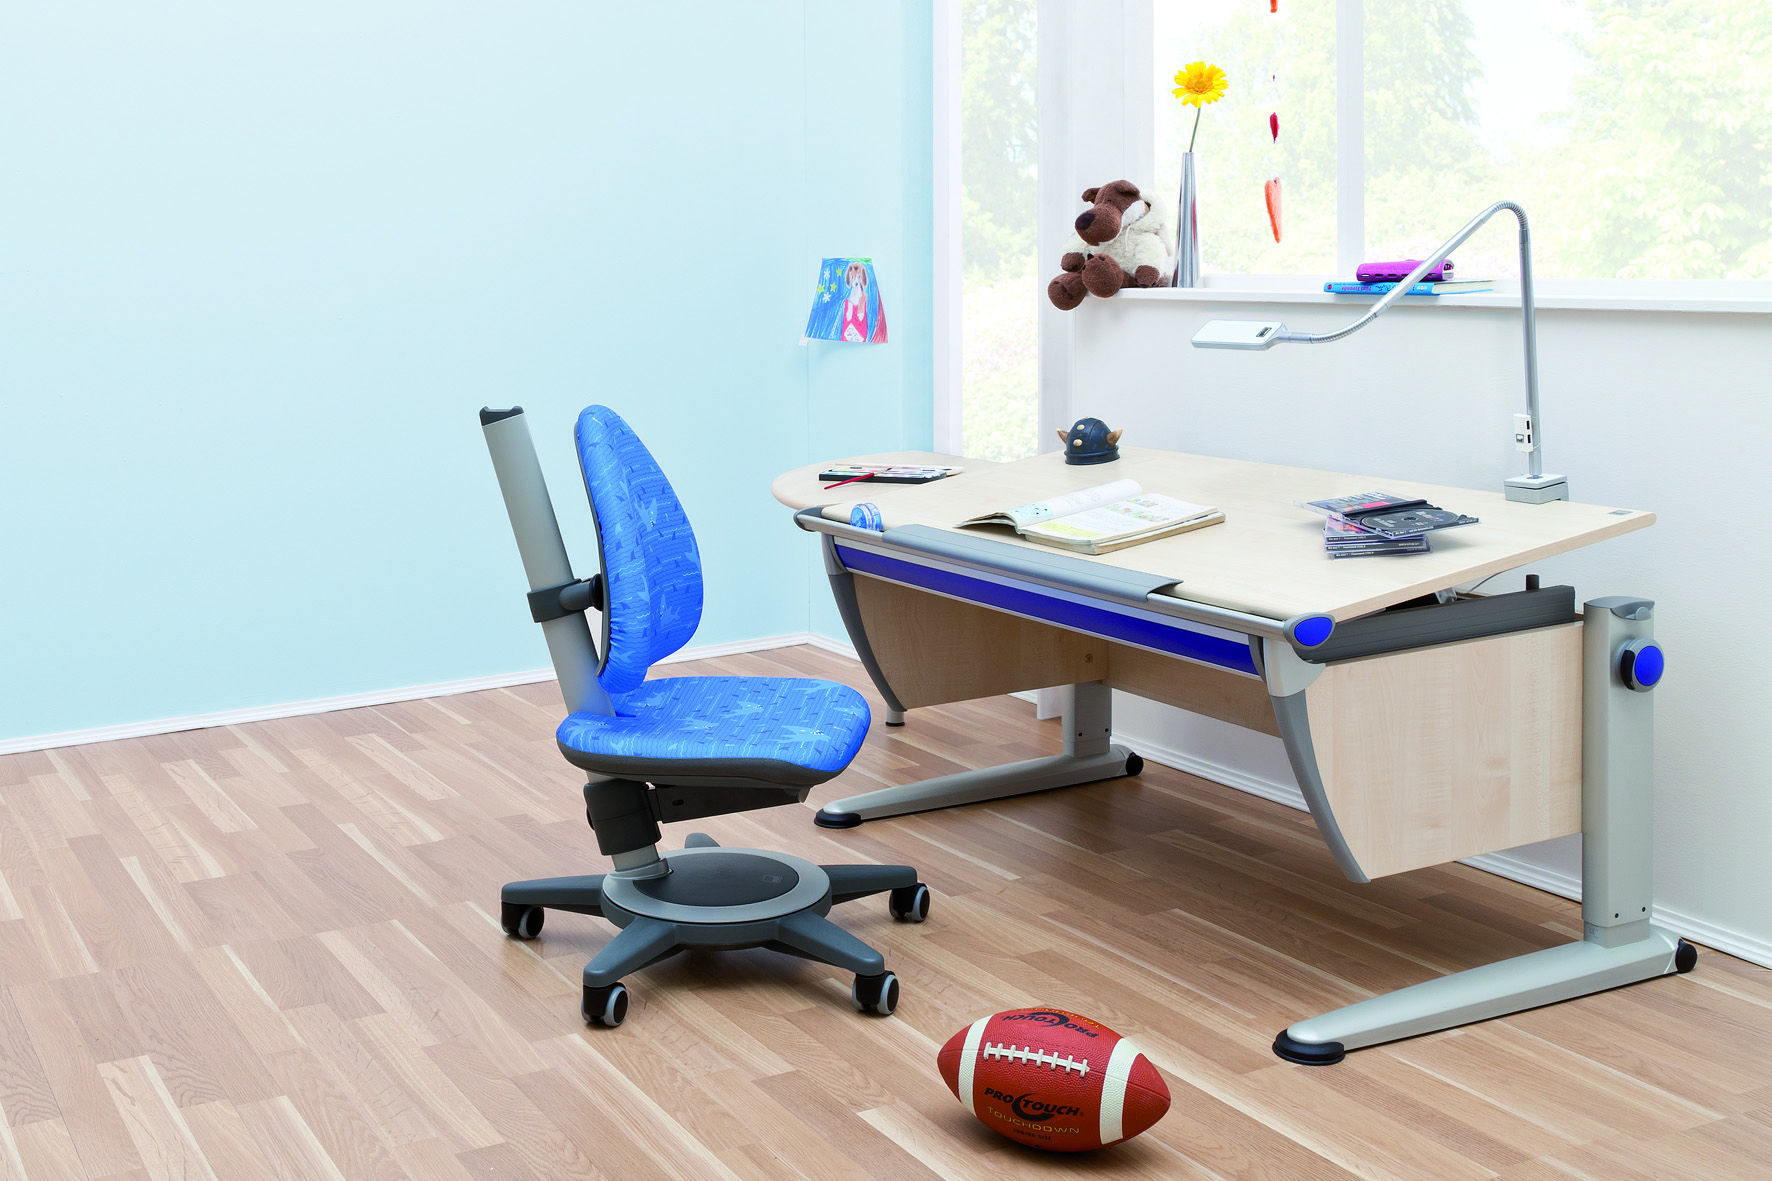 moll Runner ergonomic table in maple finish and Maximo